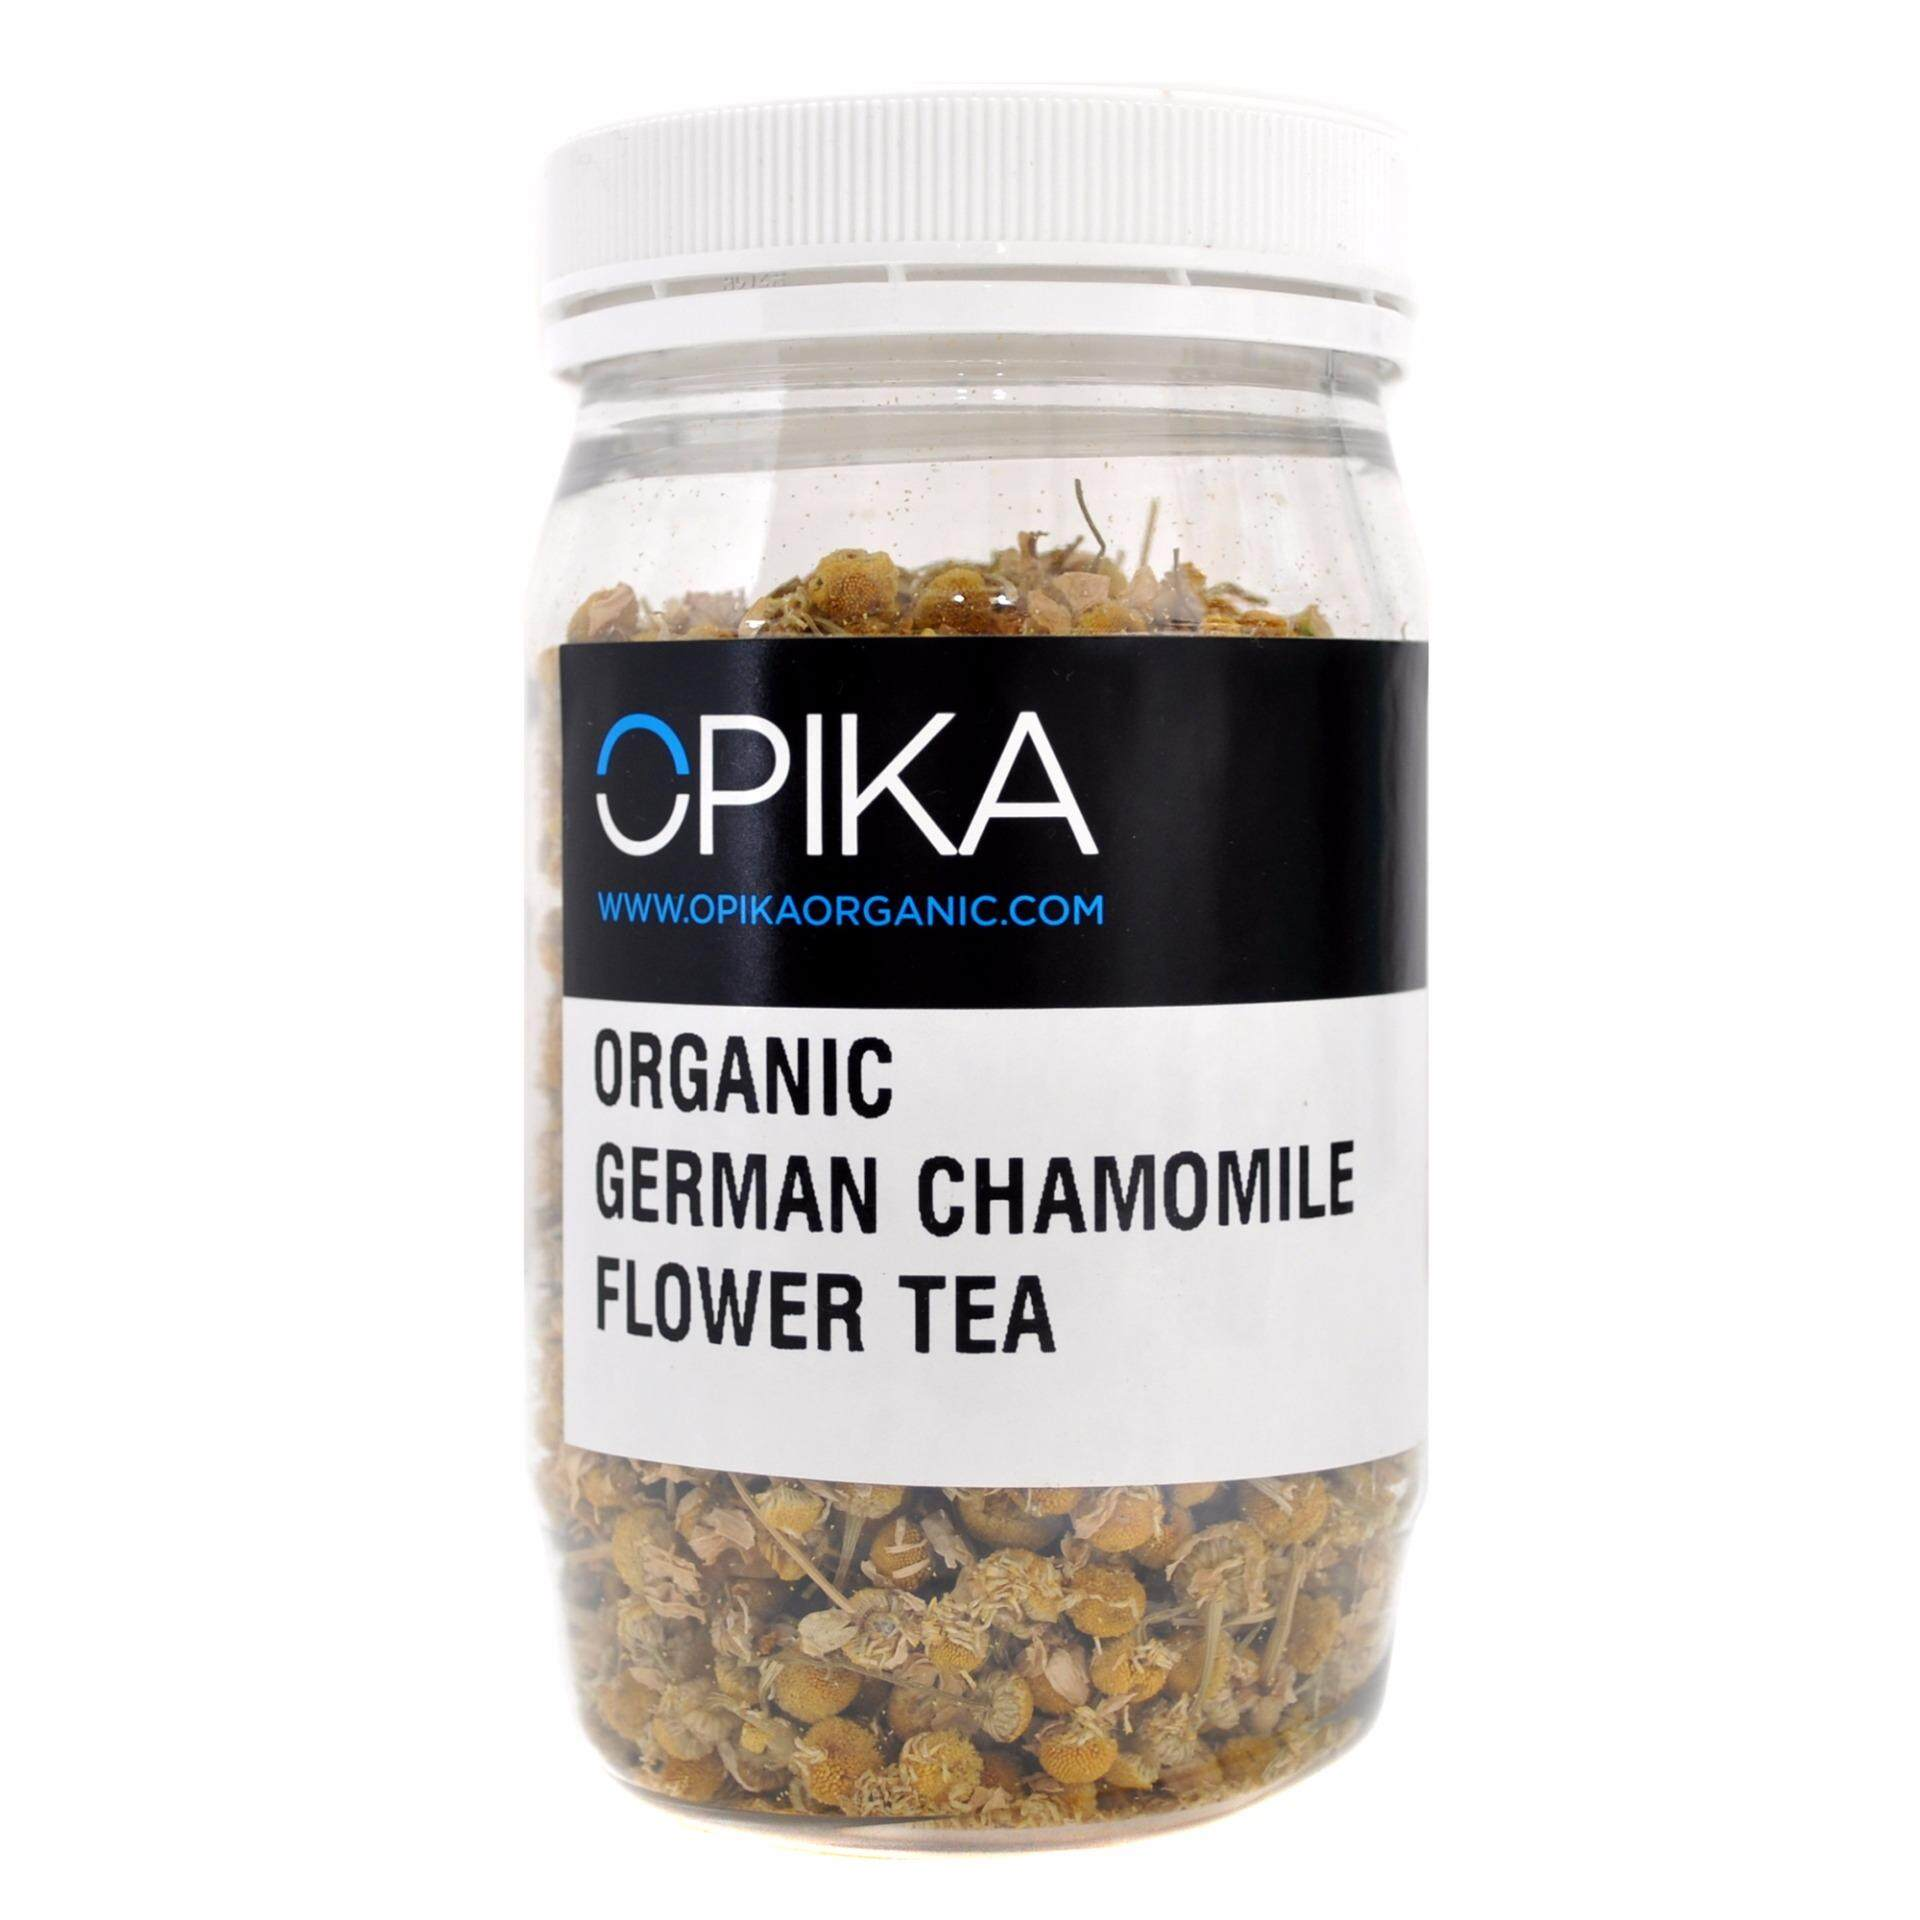 OPIKA Organic German Chamomile Flower Tea 30g